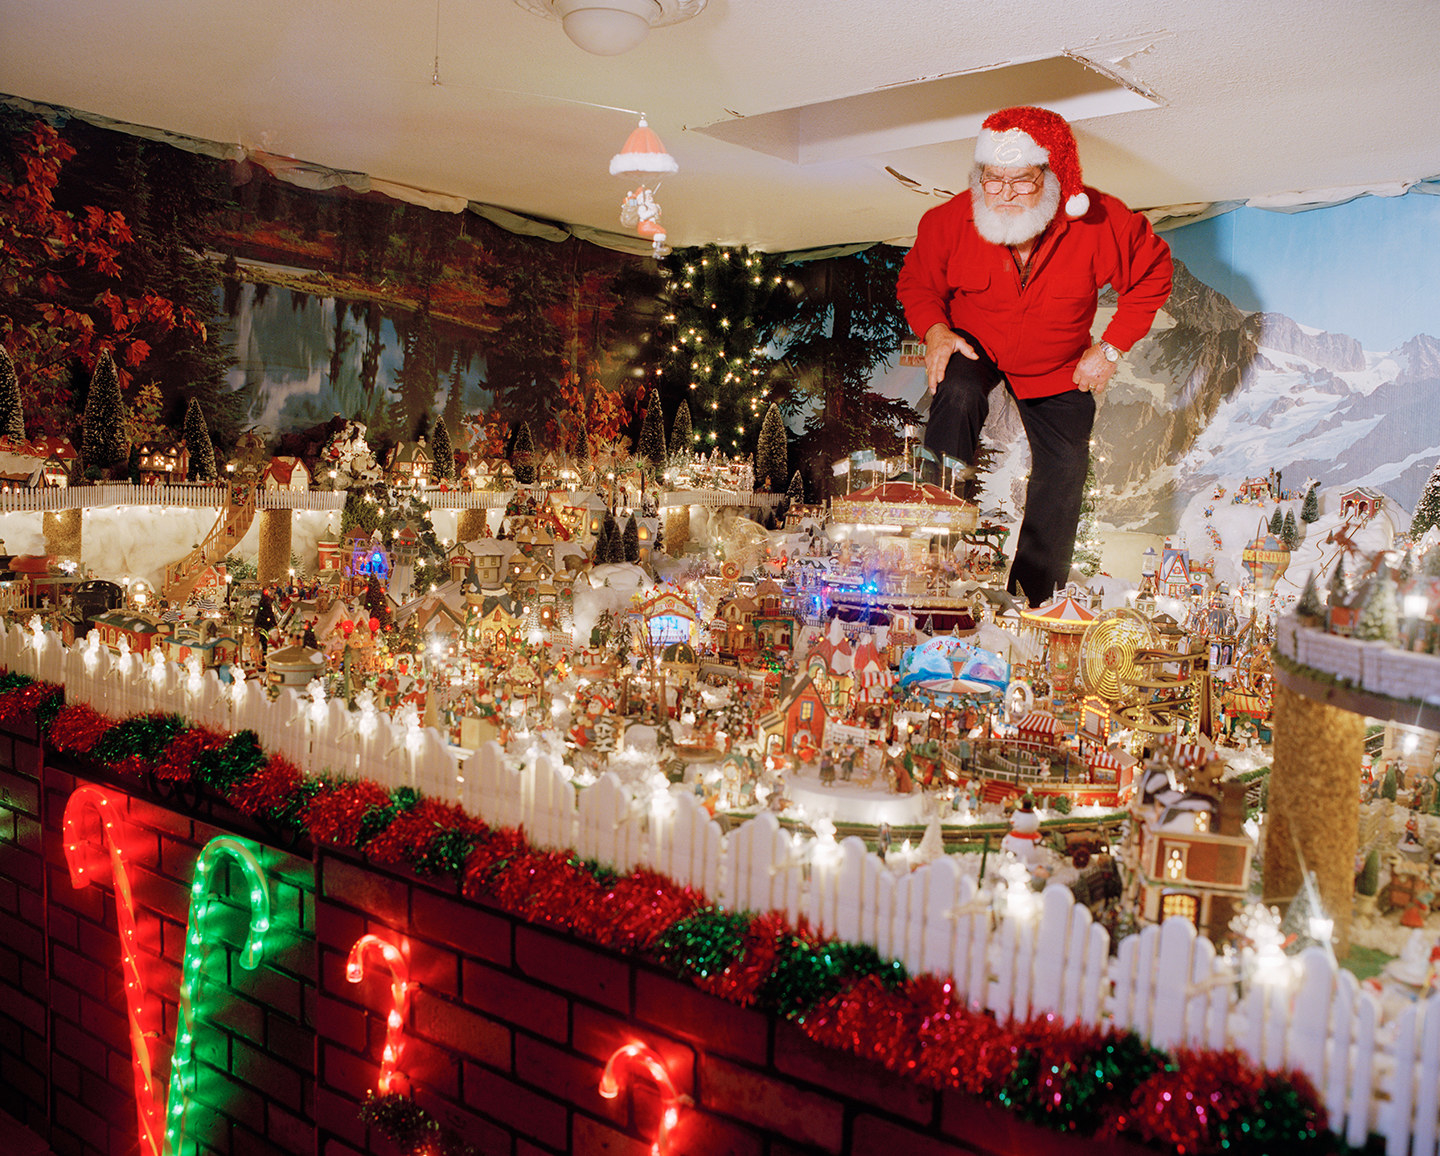 A man standing in a giant Christmas train display